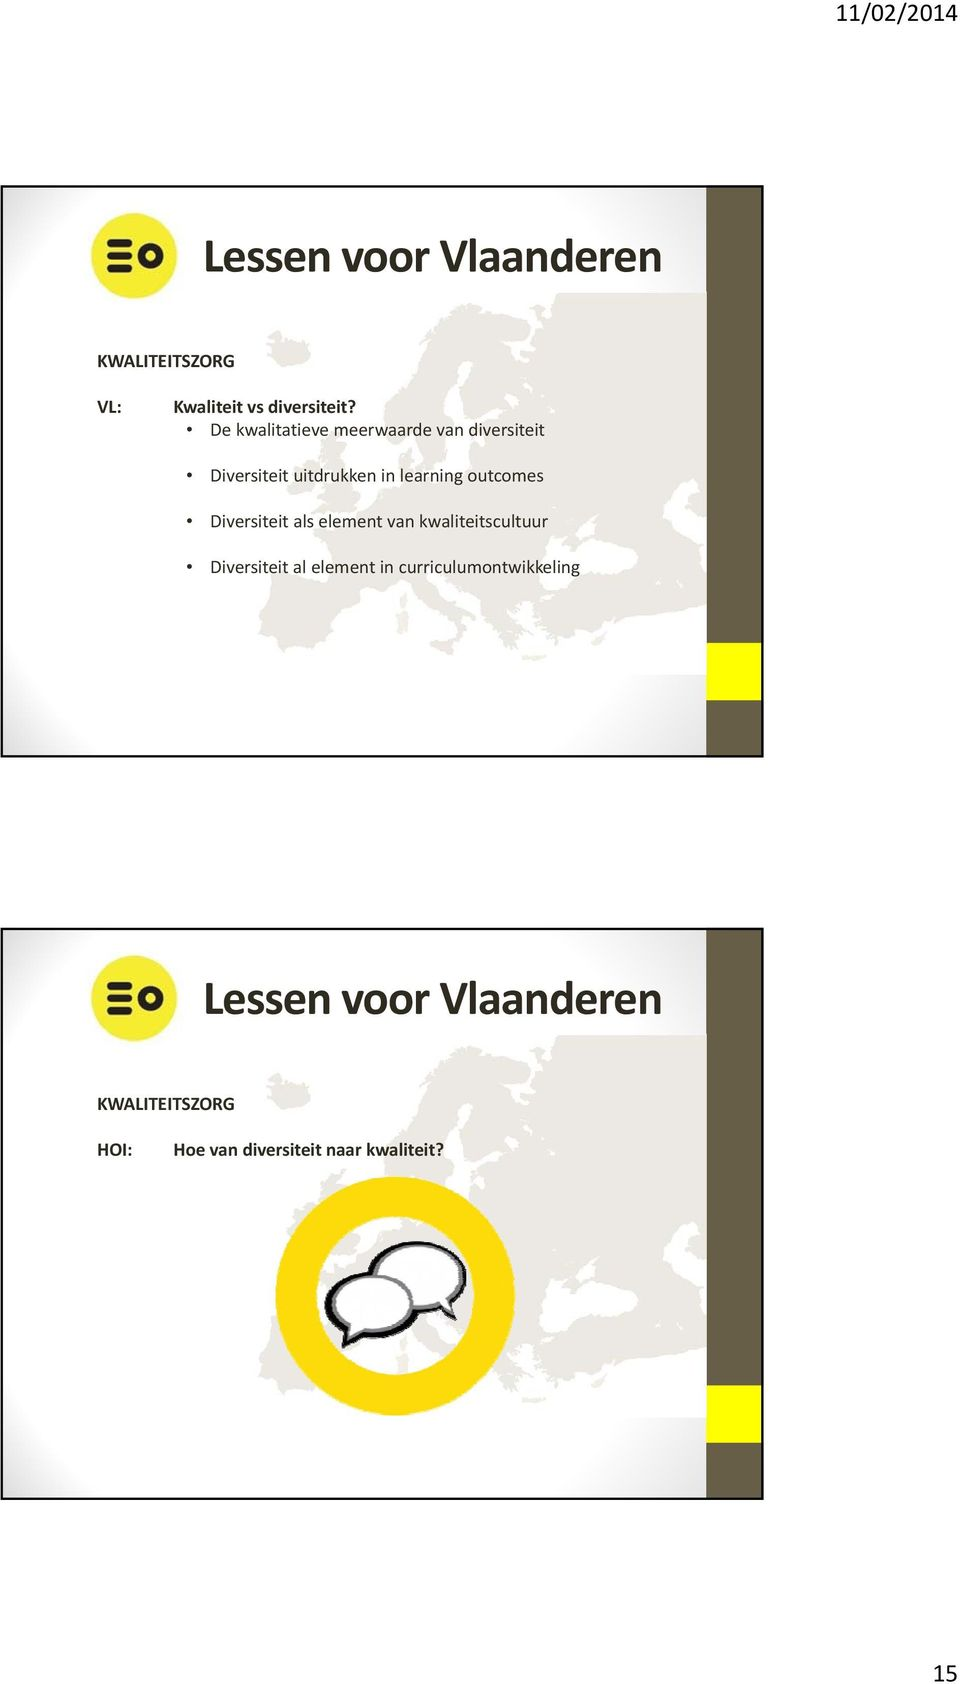 learning outcomes Diversiteit als element van kwaliteitscultuur